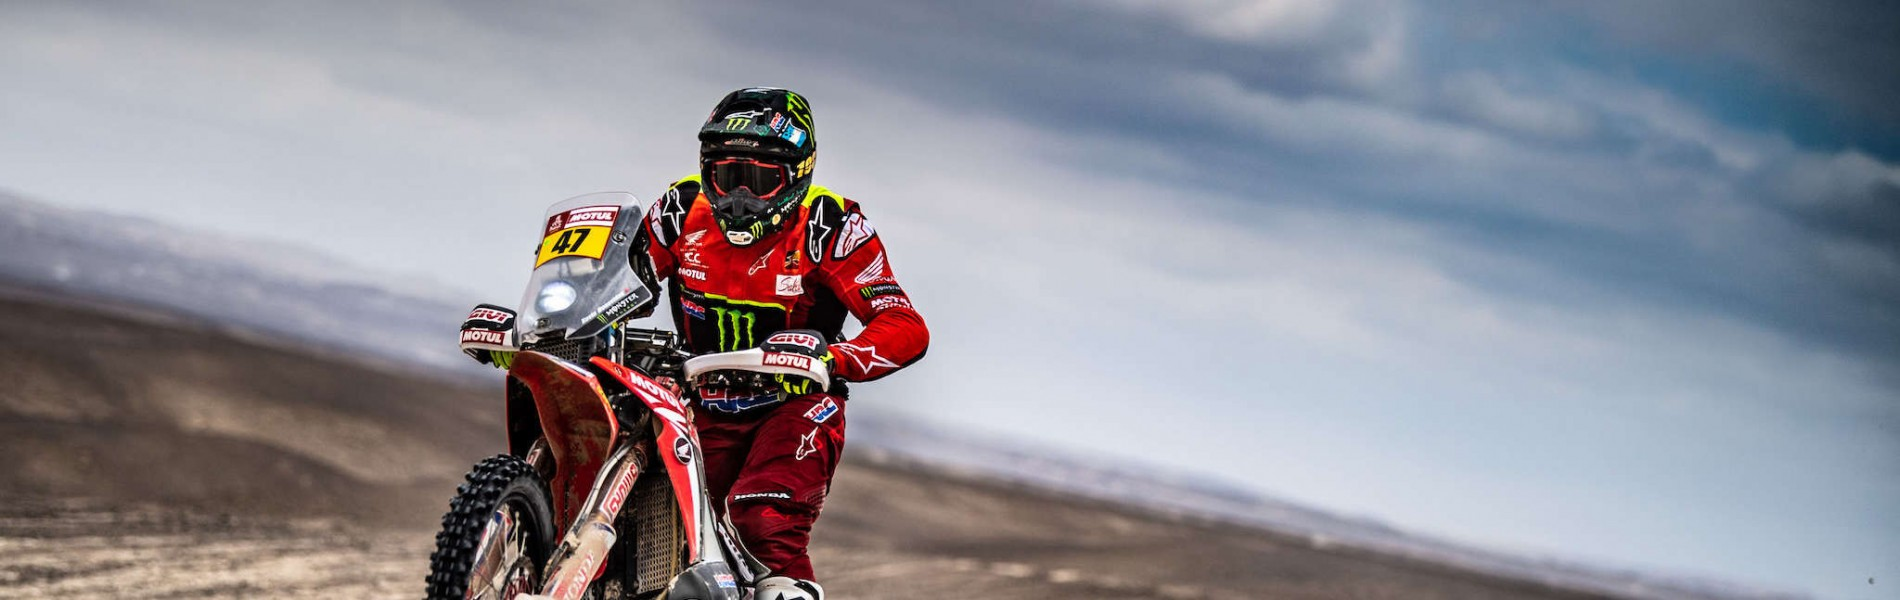 Kevin Benavides at the 2019 Dakar